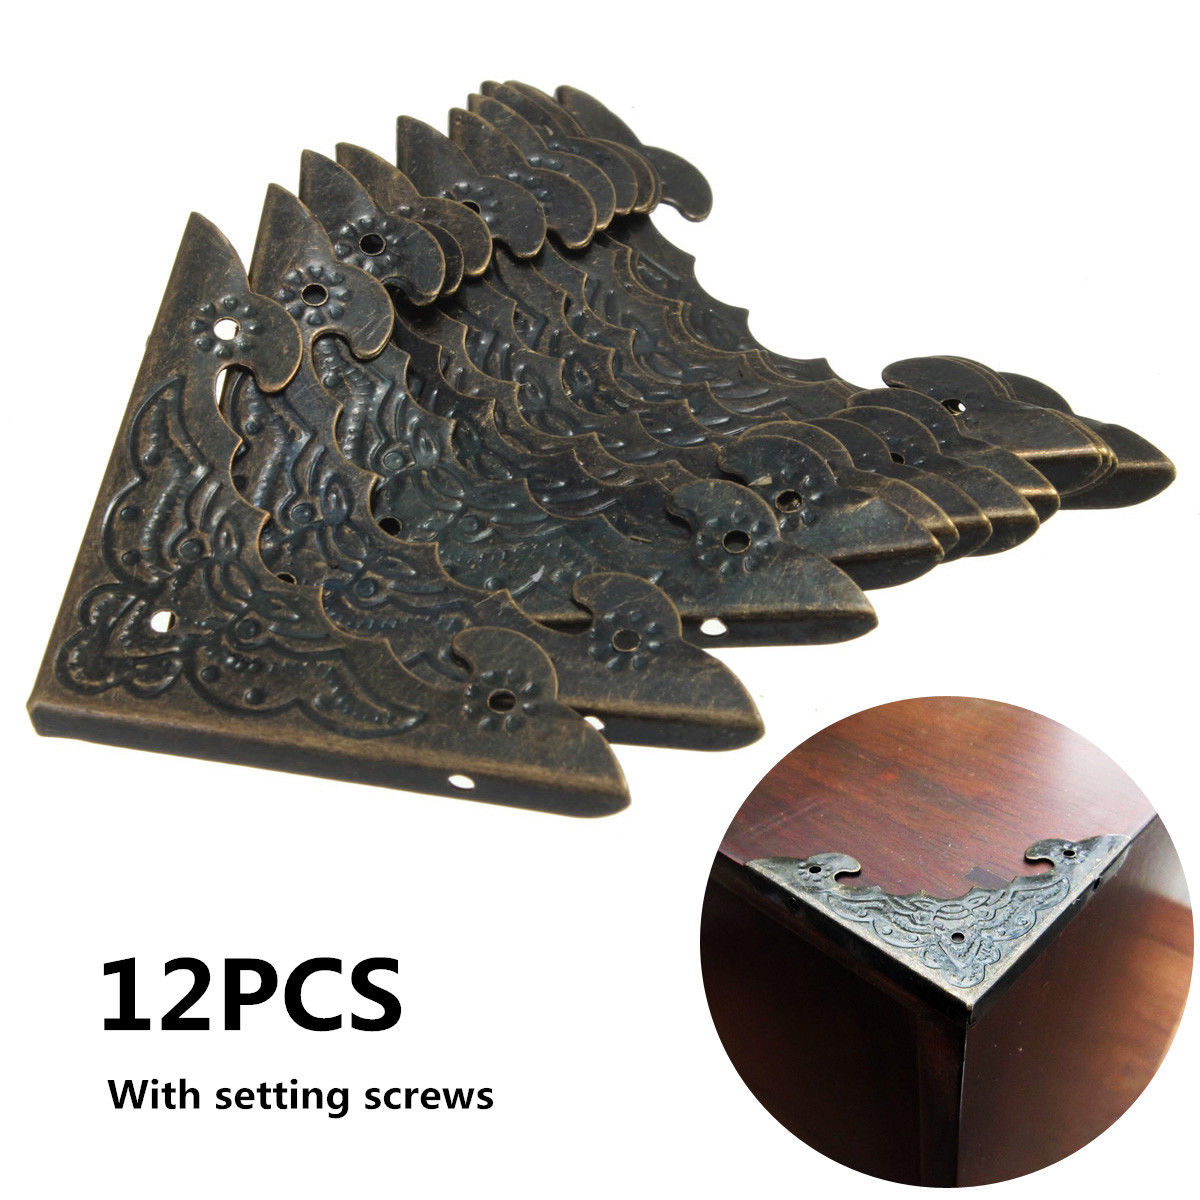 12pcs Antique Brass Jewelry Wine Gift Box Wooden Cases Decorative Feet Leg Desk Table Corner Protector Guard 5.6*4*4cm12pcs Antique Brass Jewelry Wine Gift Box Wooden Cases Decorative Feet Leg Desk Table Corner Protector Guard 5.6*4*4cm